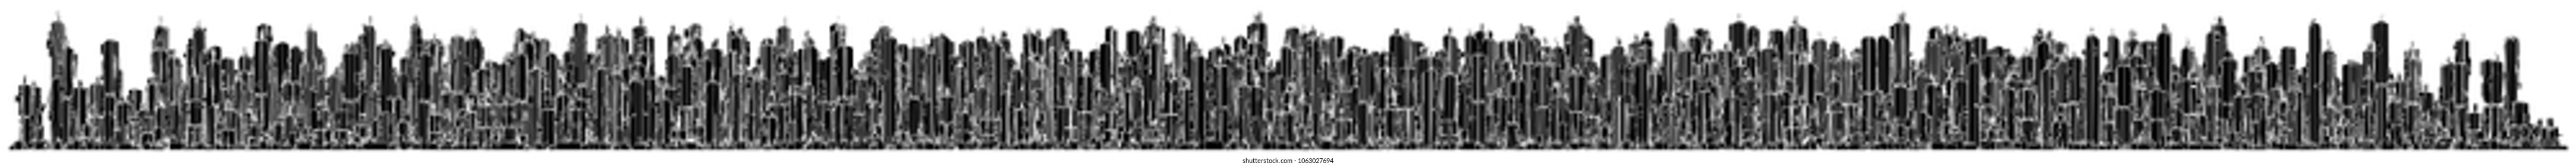 Futuristic Megalopolis City Of Skyscrapers 70. Landscape panoramic futuristic city view.